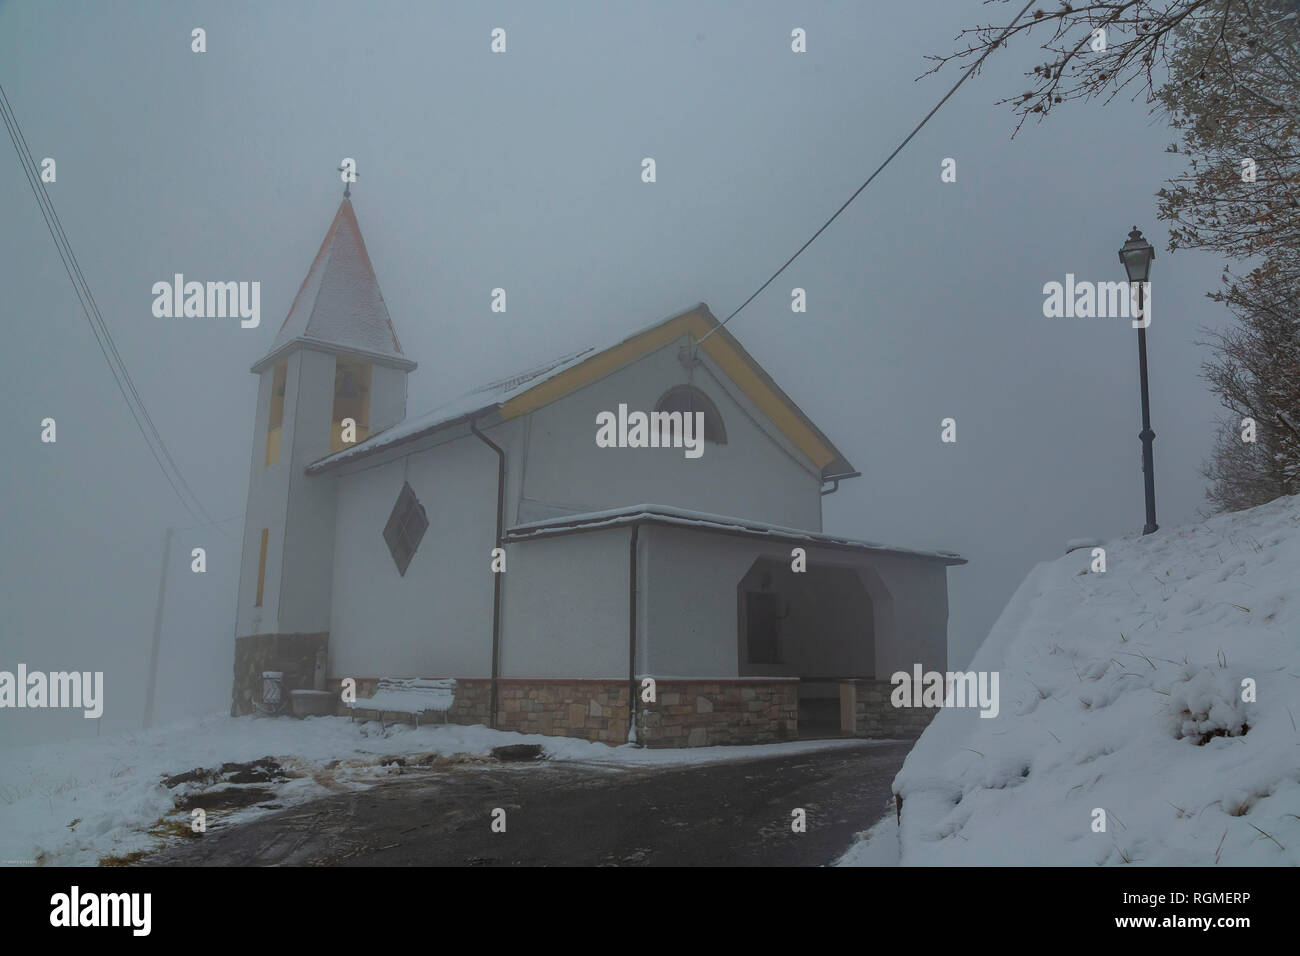 Genoa, Italy. 30th January 2019.   View of the church of Costalovaia,30 Km north of Genoa, 480 meters above sea level, during today's snowfall in Liguria on January 30, 2019 in Genoa, Italy. A cold snap has hit Italy this week with snow forecast in  other cities Italy. (Photo by Awakening/Getty Images) Credit: Awakening/Alamy Live News - Stock Image